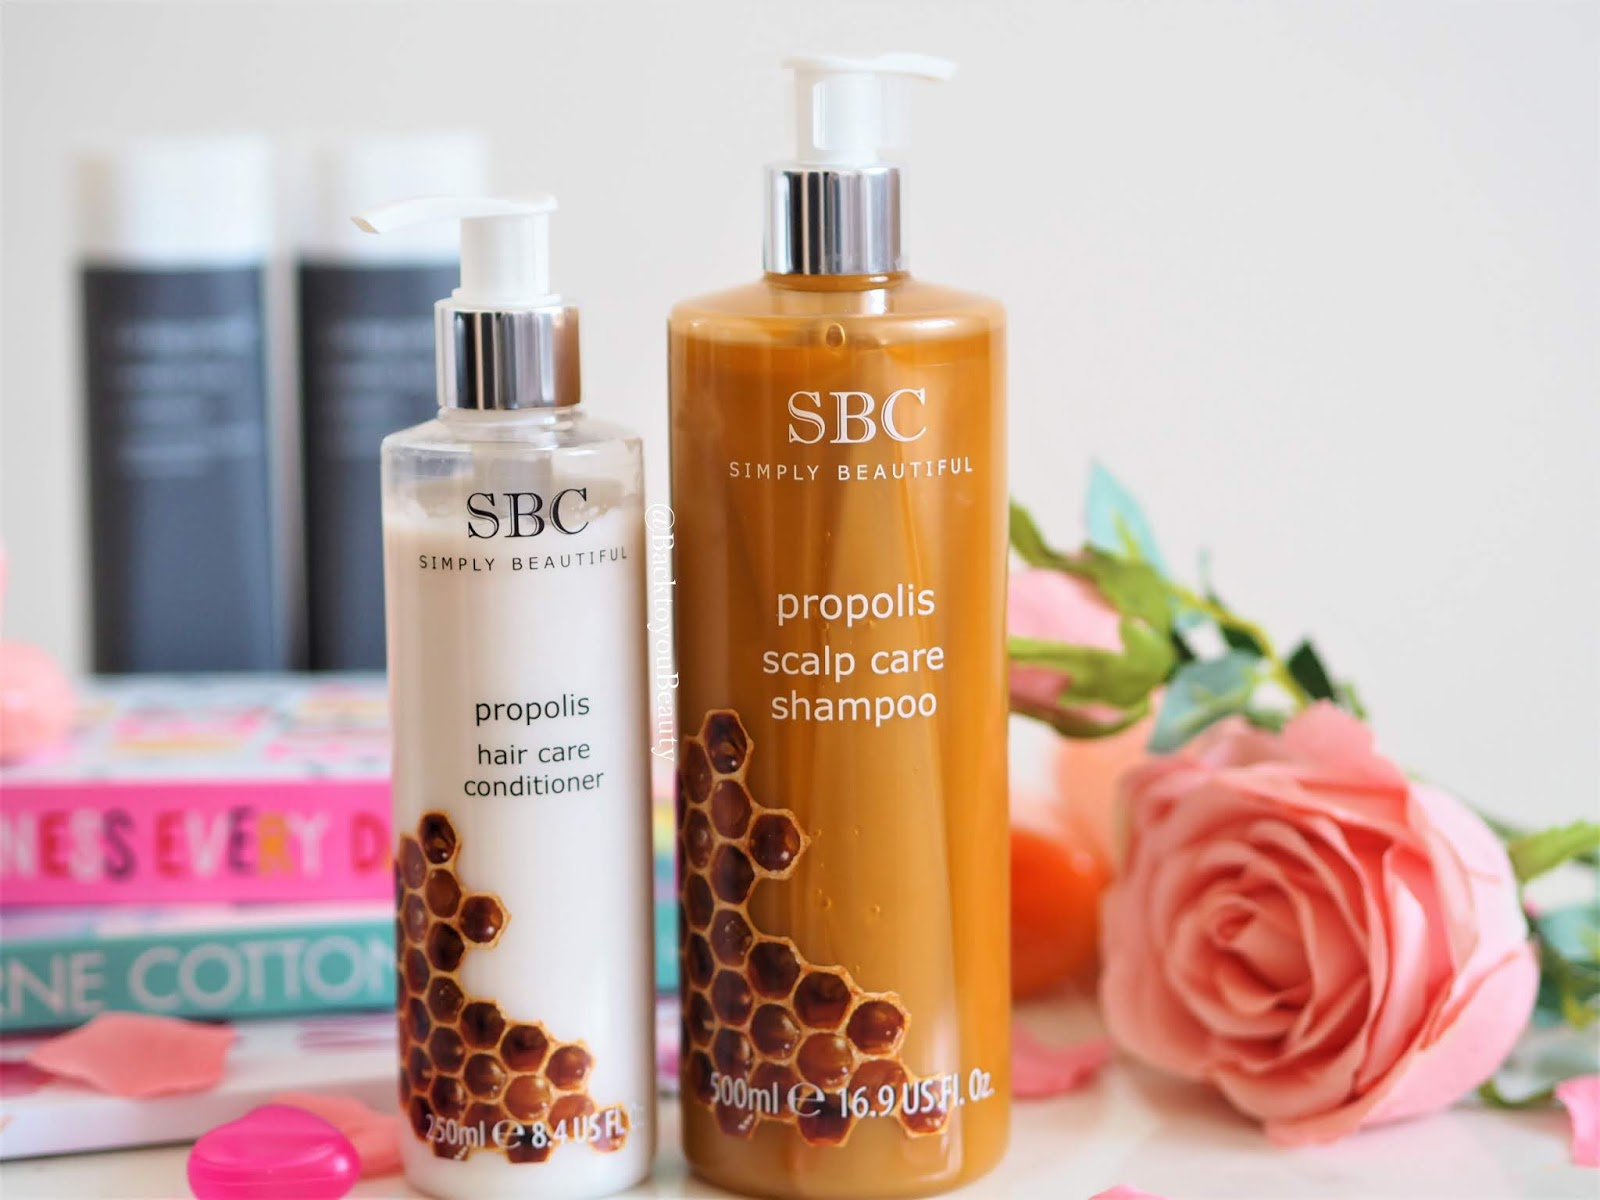 Propolis shampoo and conditioner